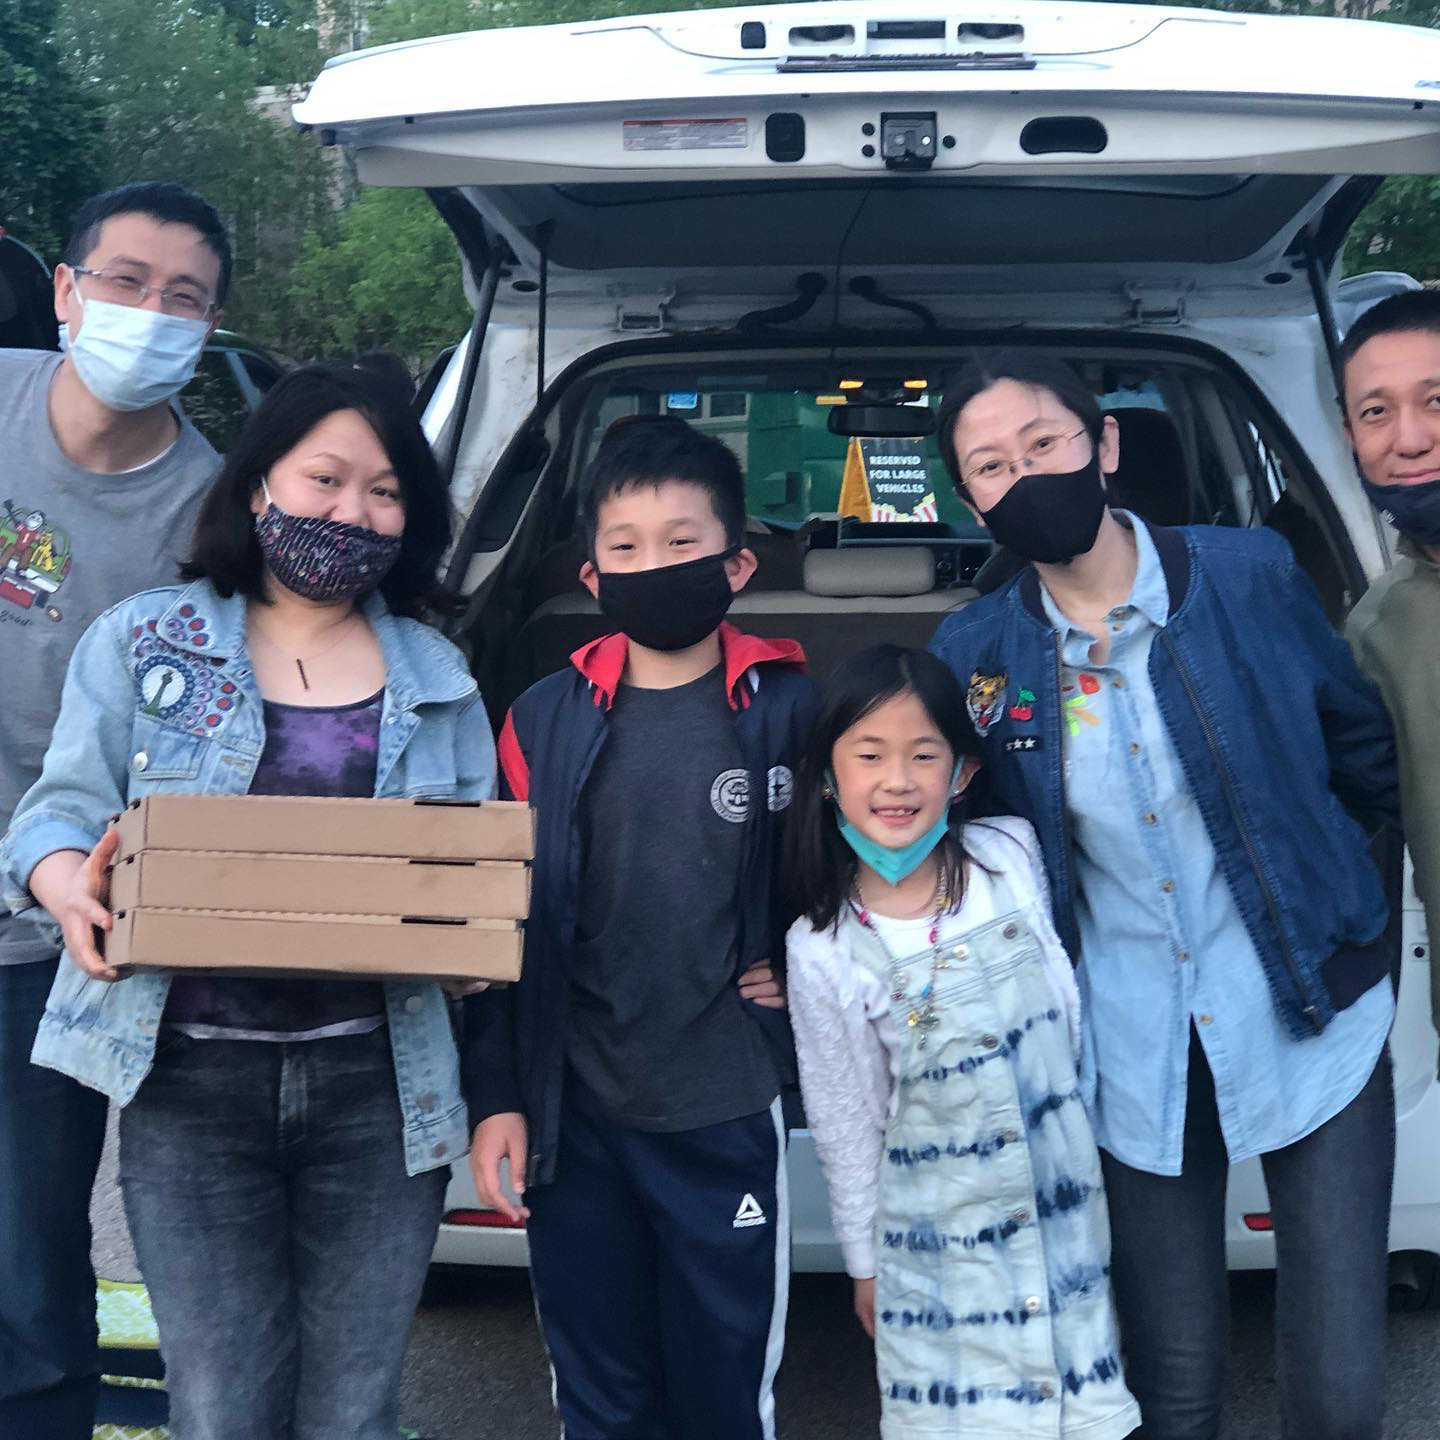 Family in front of trunk wearing masks holding pizza